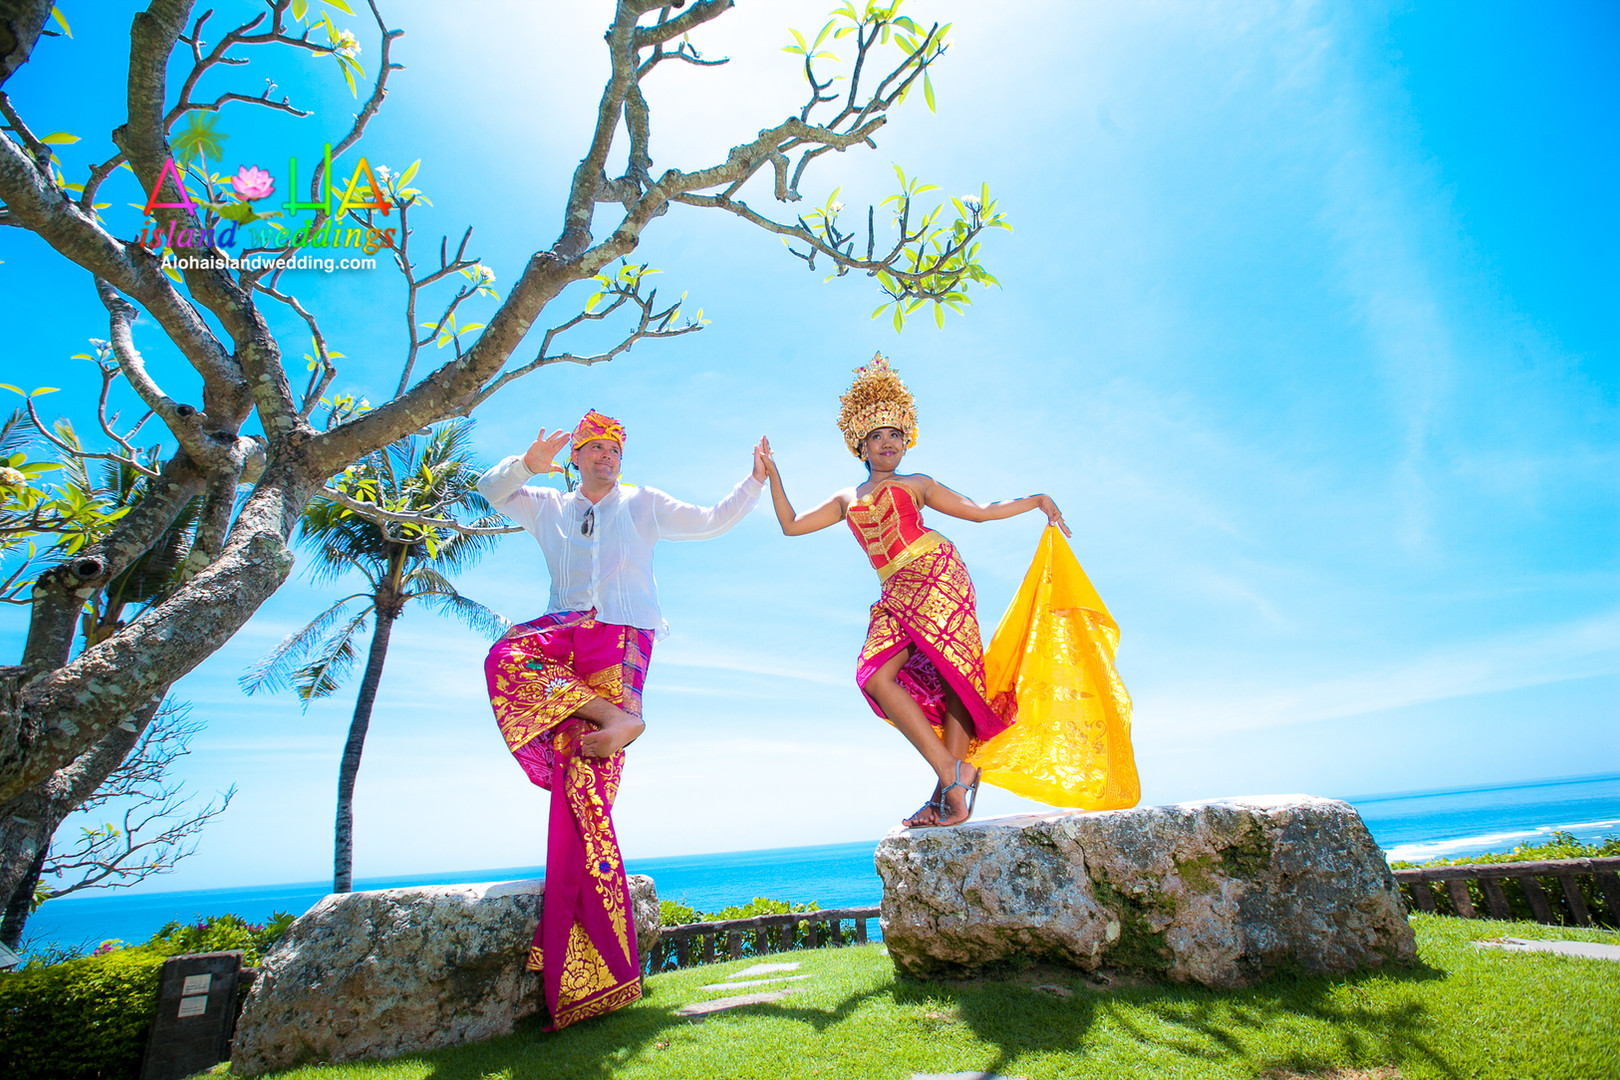 Wedding photographer Oahu -dewi1-56.jpg